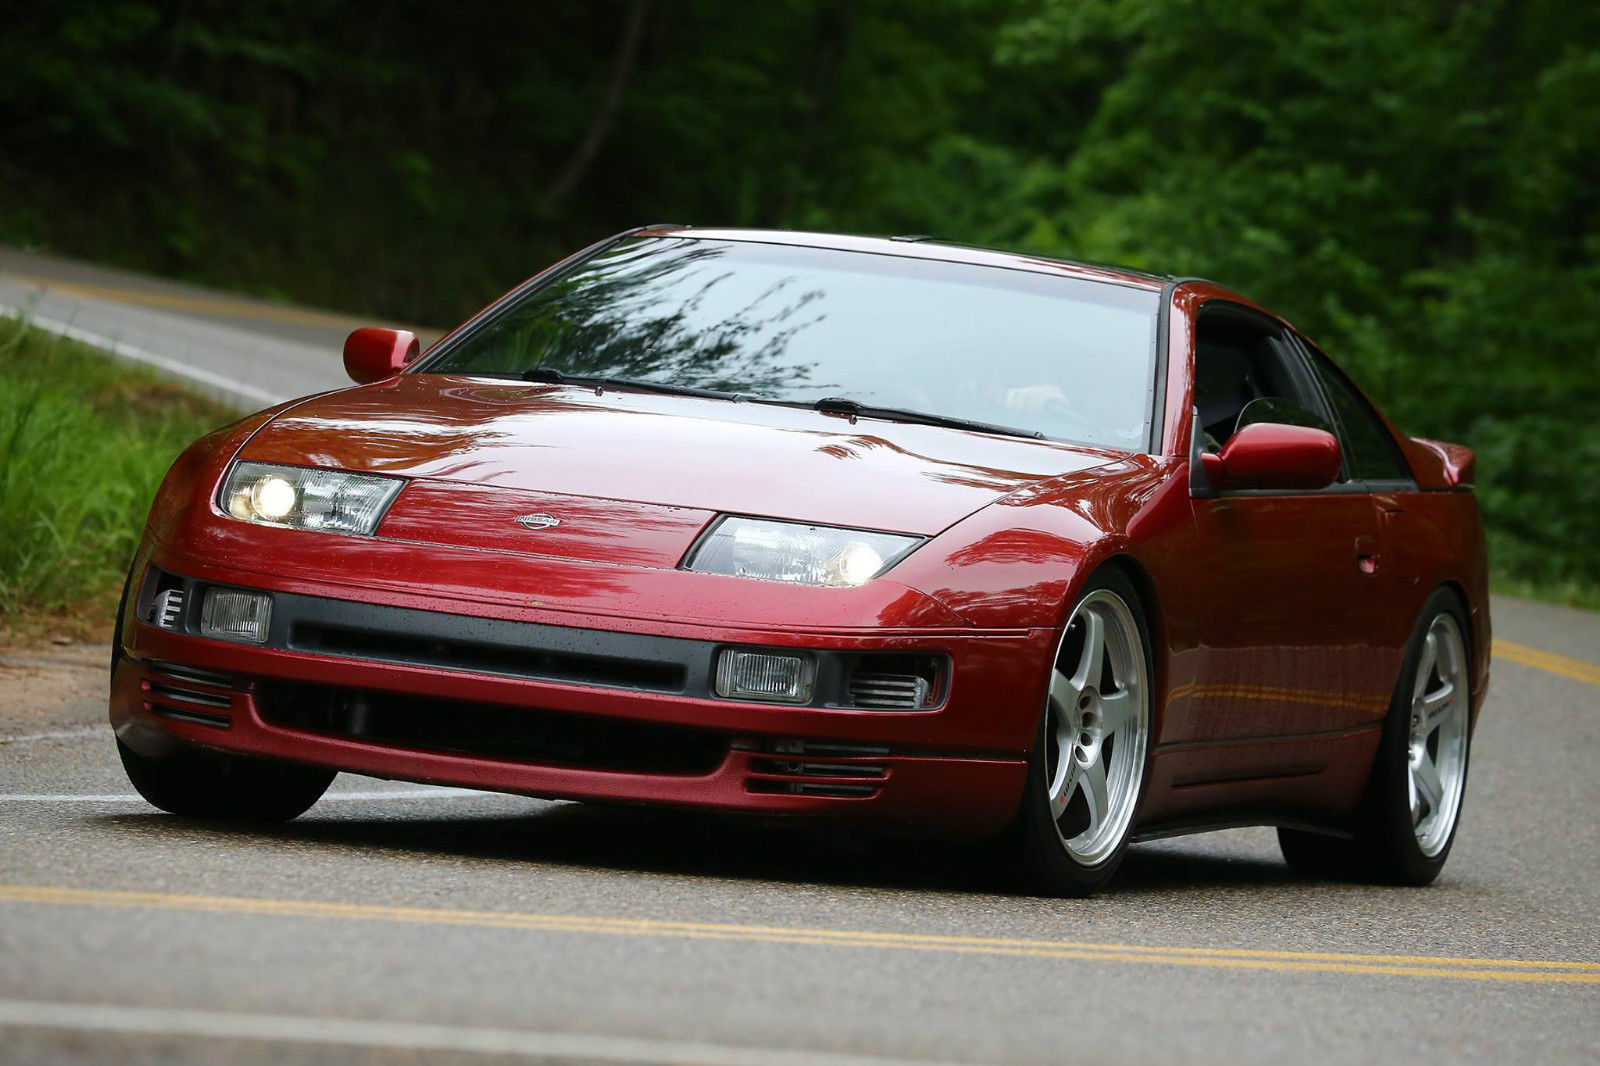 1992 nissan 300zx twin turbo z32 classic nissan 300zx 1992 for sale. Black Bedroom Furniture Sets. Home Design Ideas